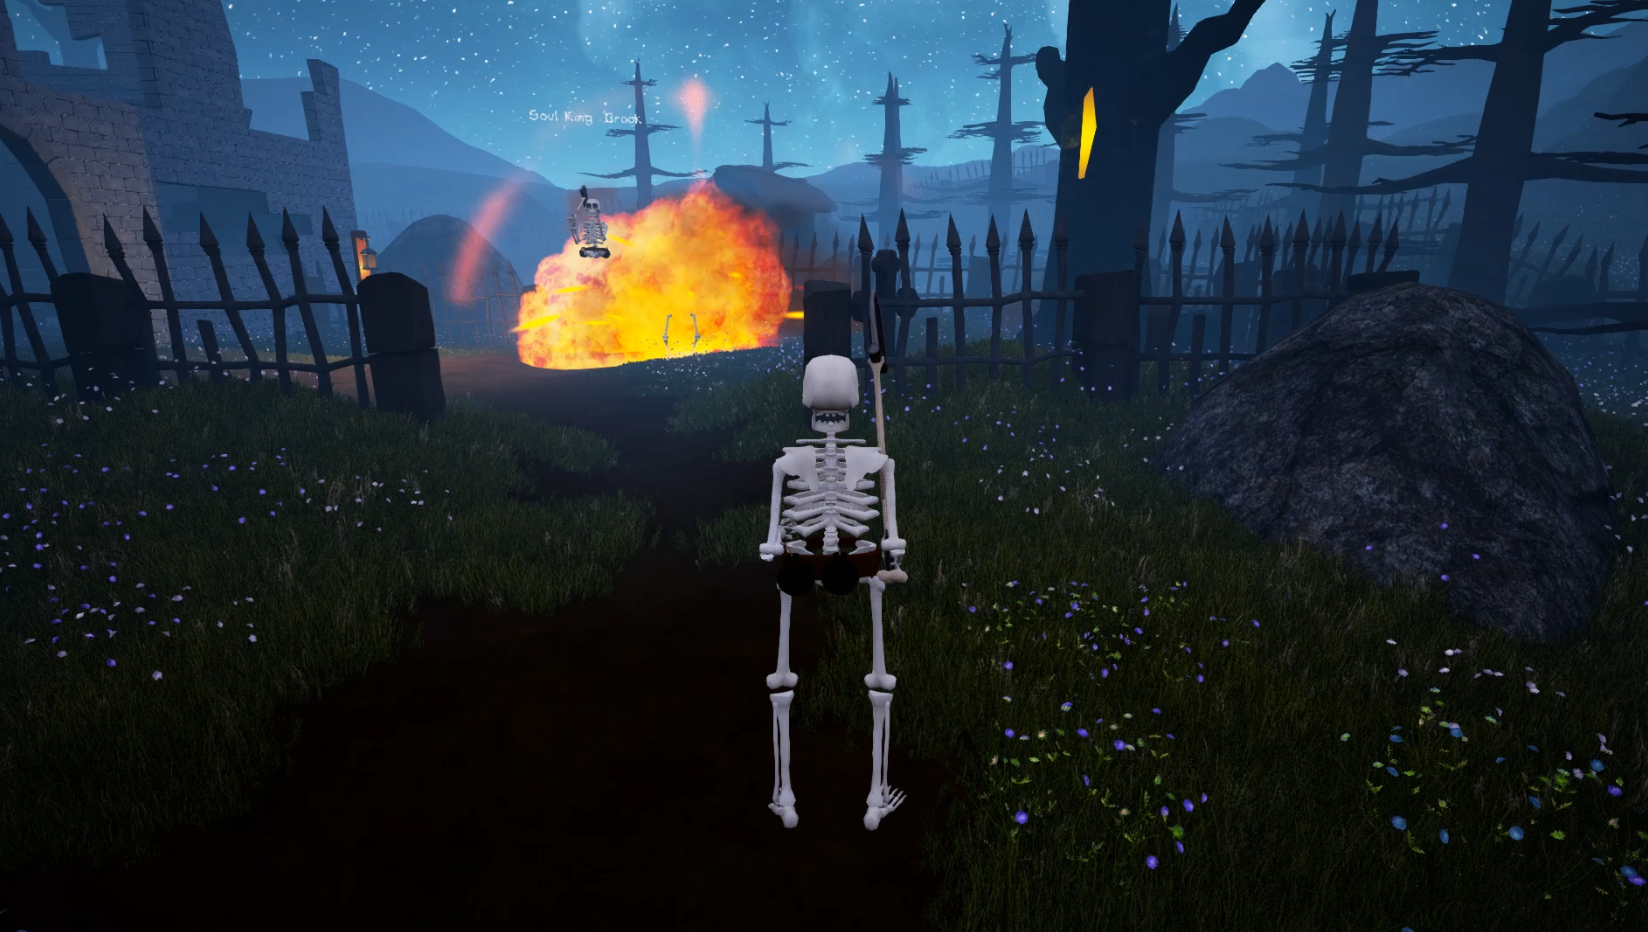 The Skeleton War - Another Bomb Explosion